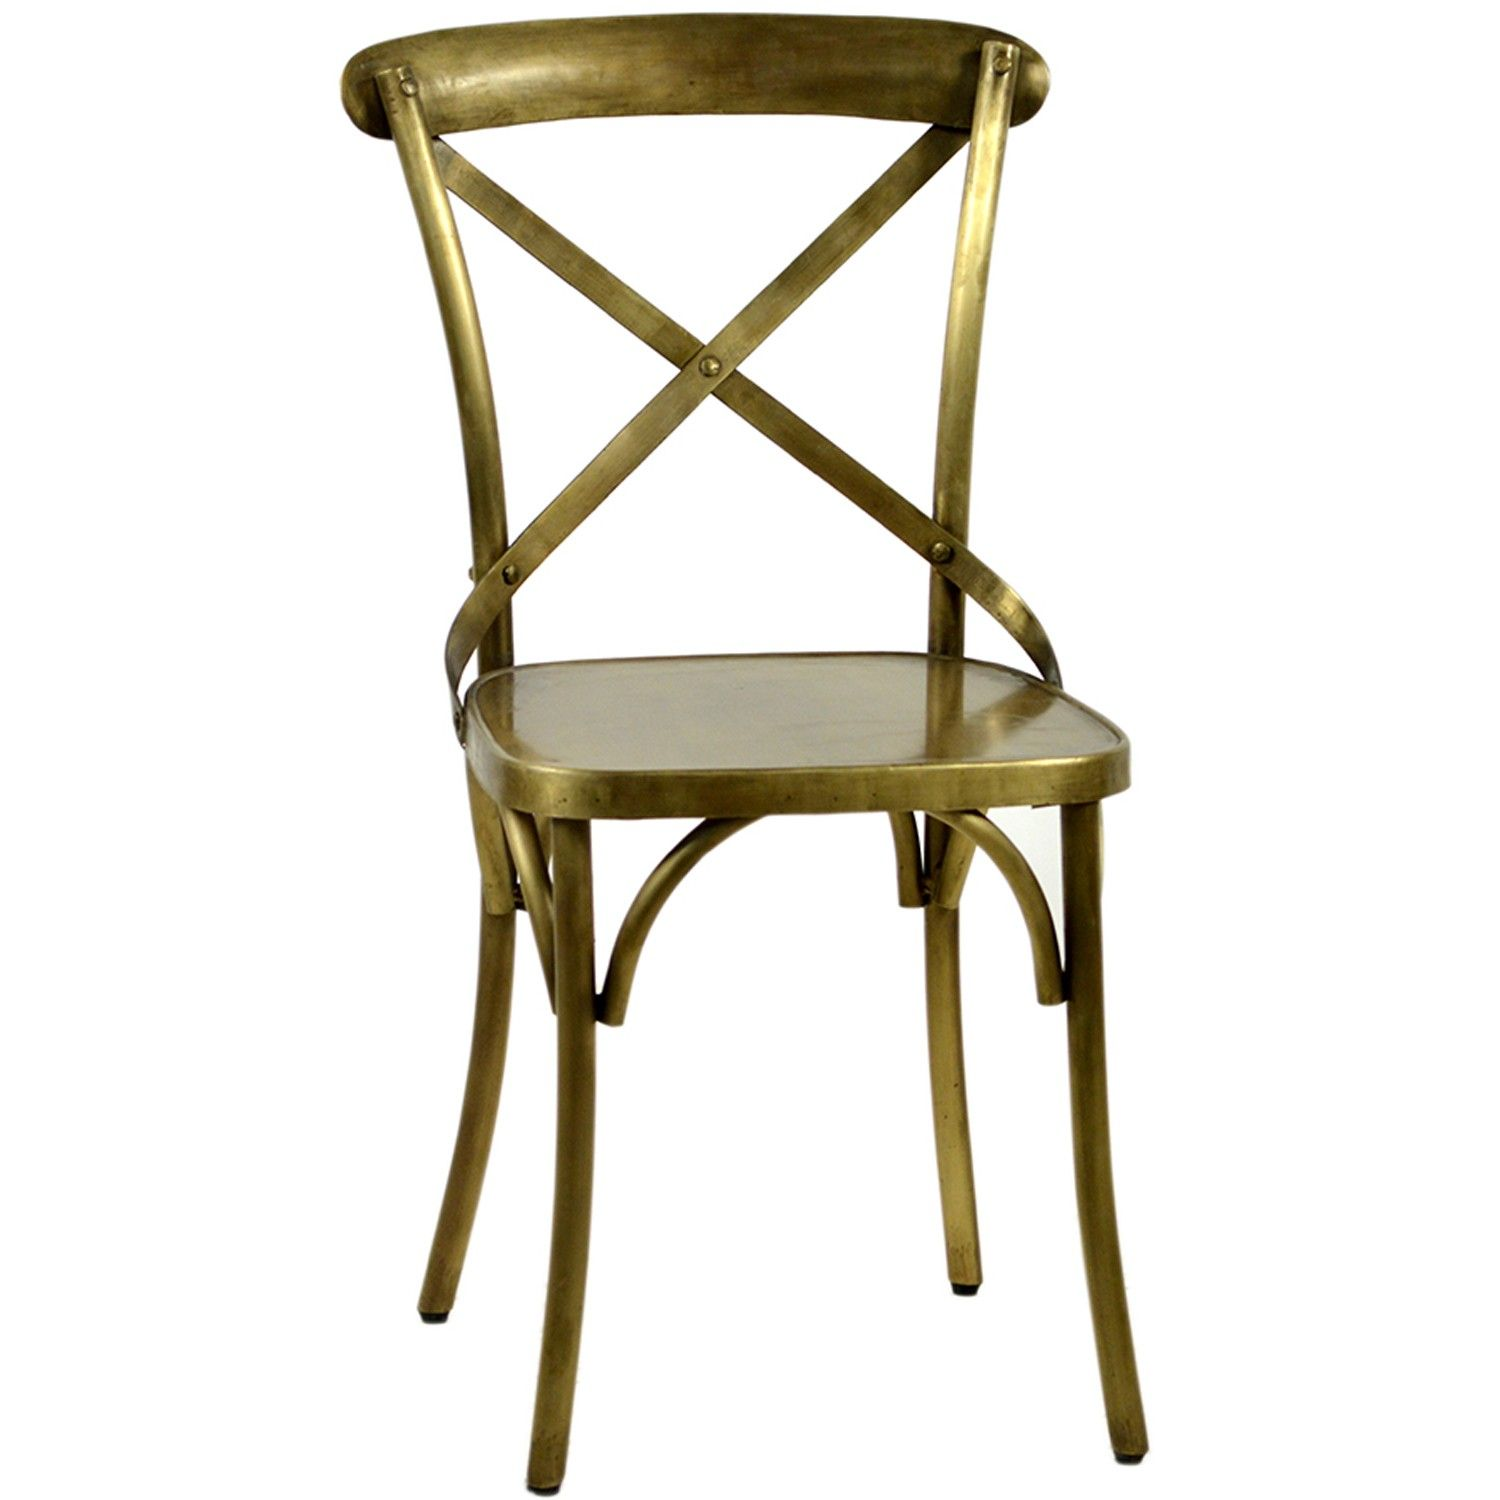 IRON CHAIR ANTIQUE BRASS FINISH U003cBRu003eu003cBRu003e U2022 Ironu003cBRu003e